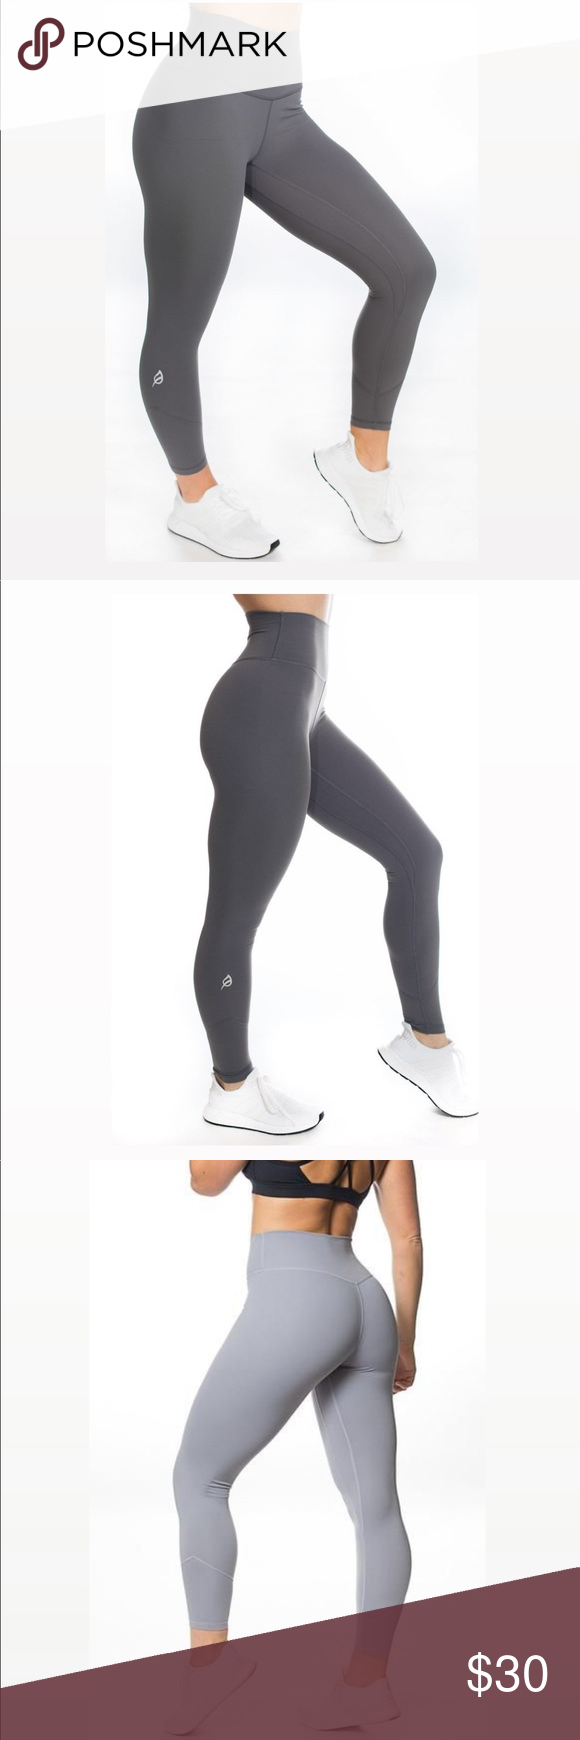 Ptula Alainah Leggings Sharkskin Gray Align Small Leggings Are Not Pants Leggings Women Shopping Fit to pursue your passions. pinterest